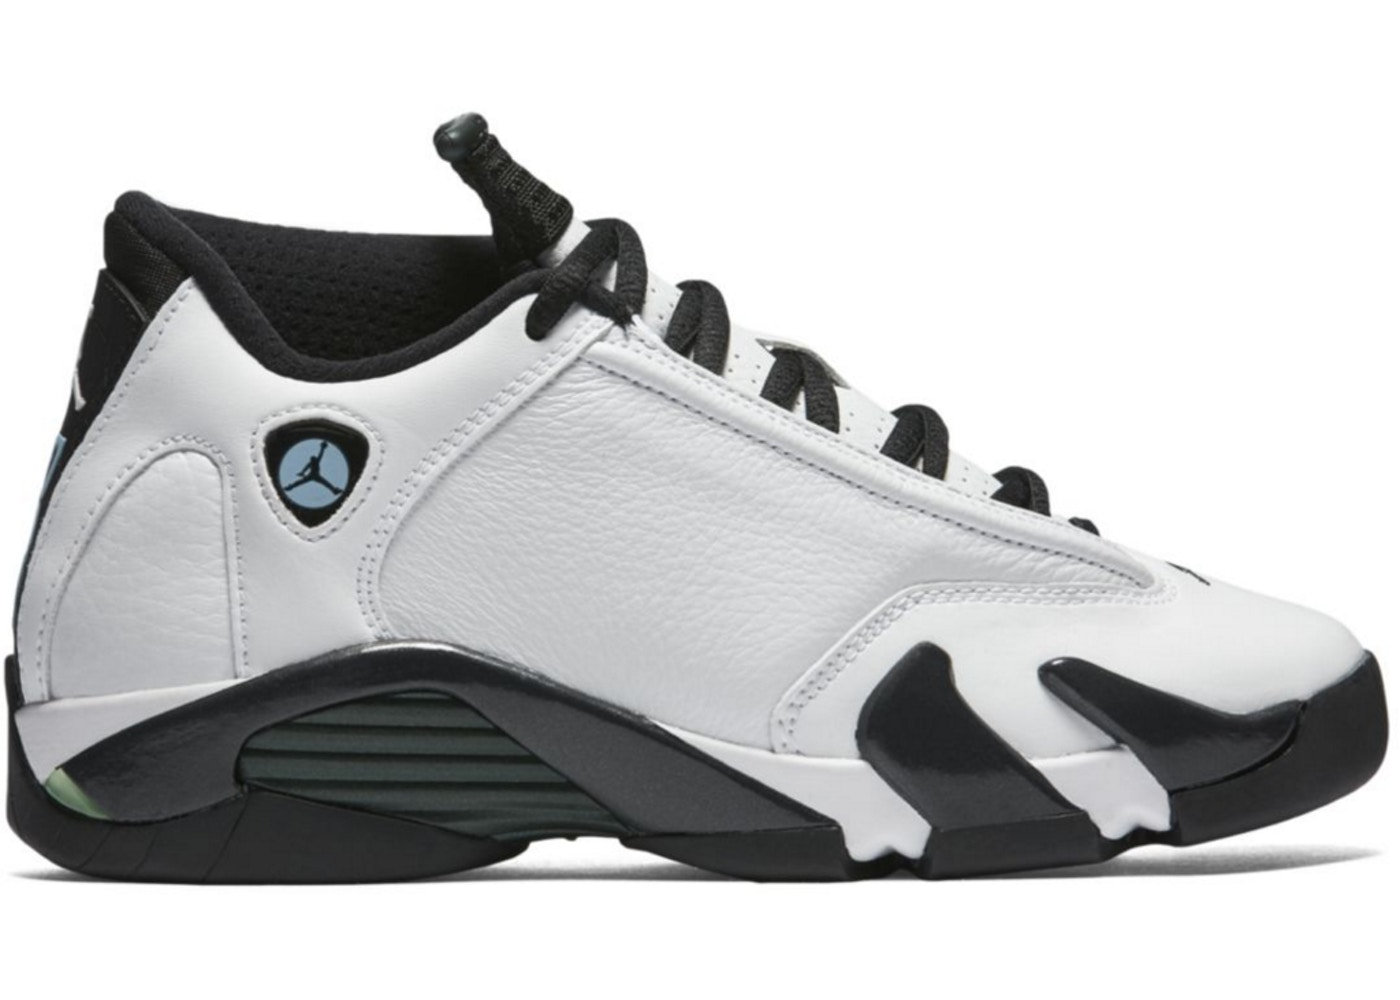 f91206cadd5 Sell. or Ask. Size: 6Y. View All Bids. Jordan 14 Retro Oxidized ...